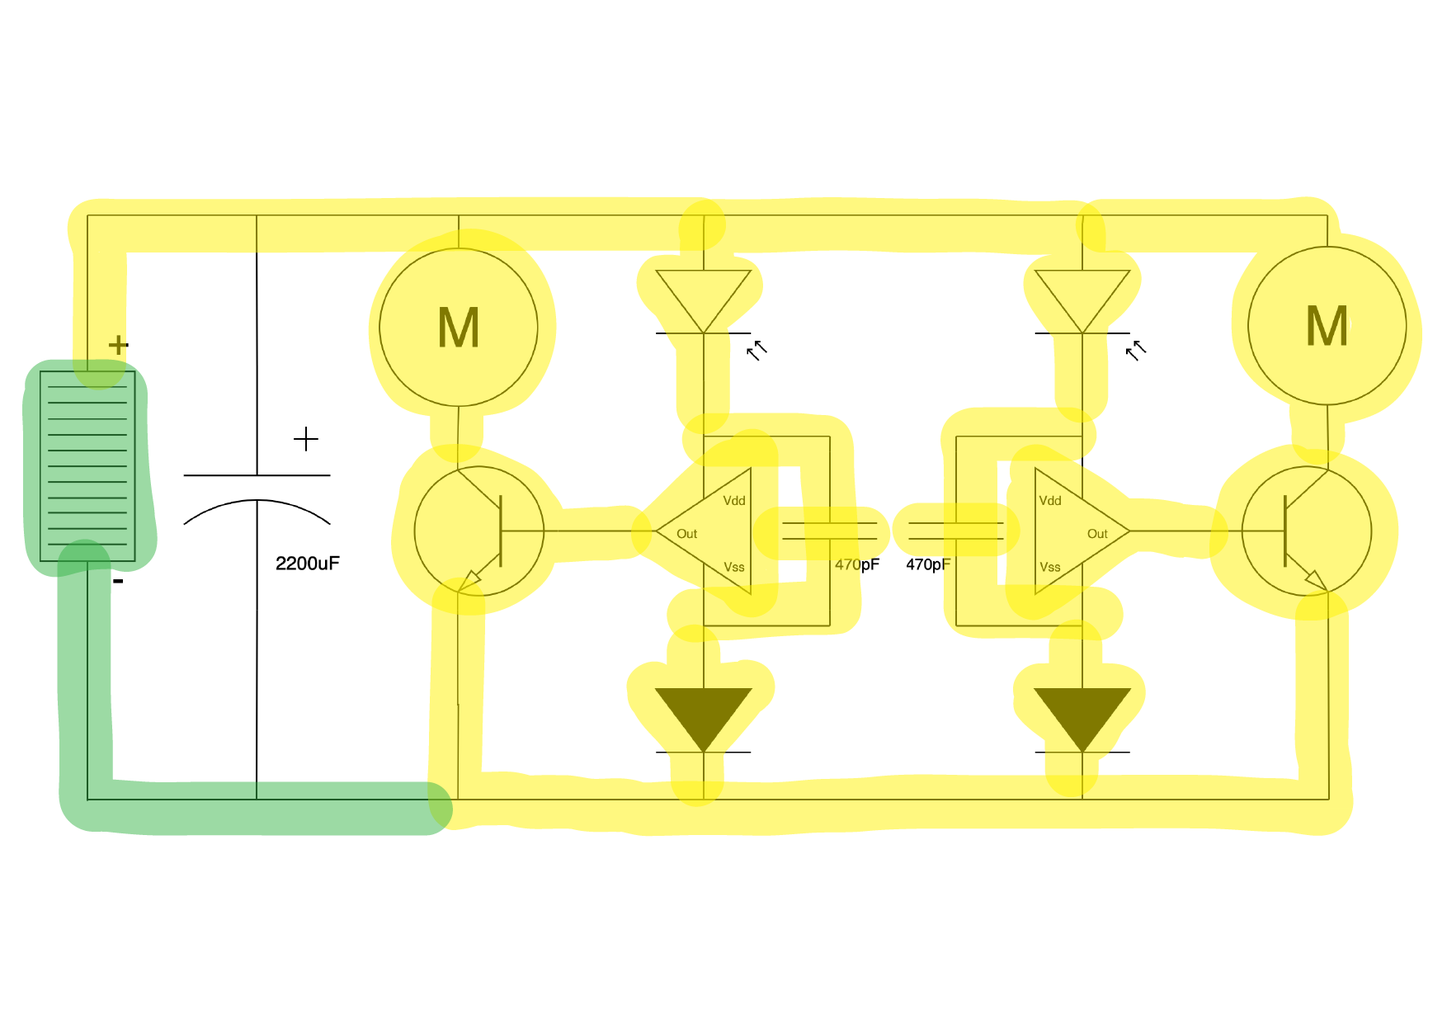 Freeforming the Circuit 12: Connecting Negative to the Solar Panel